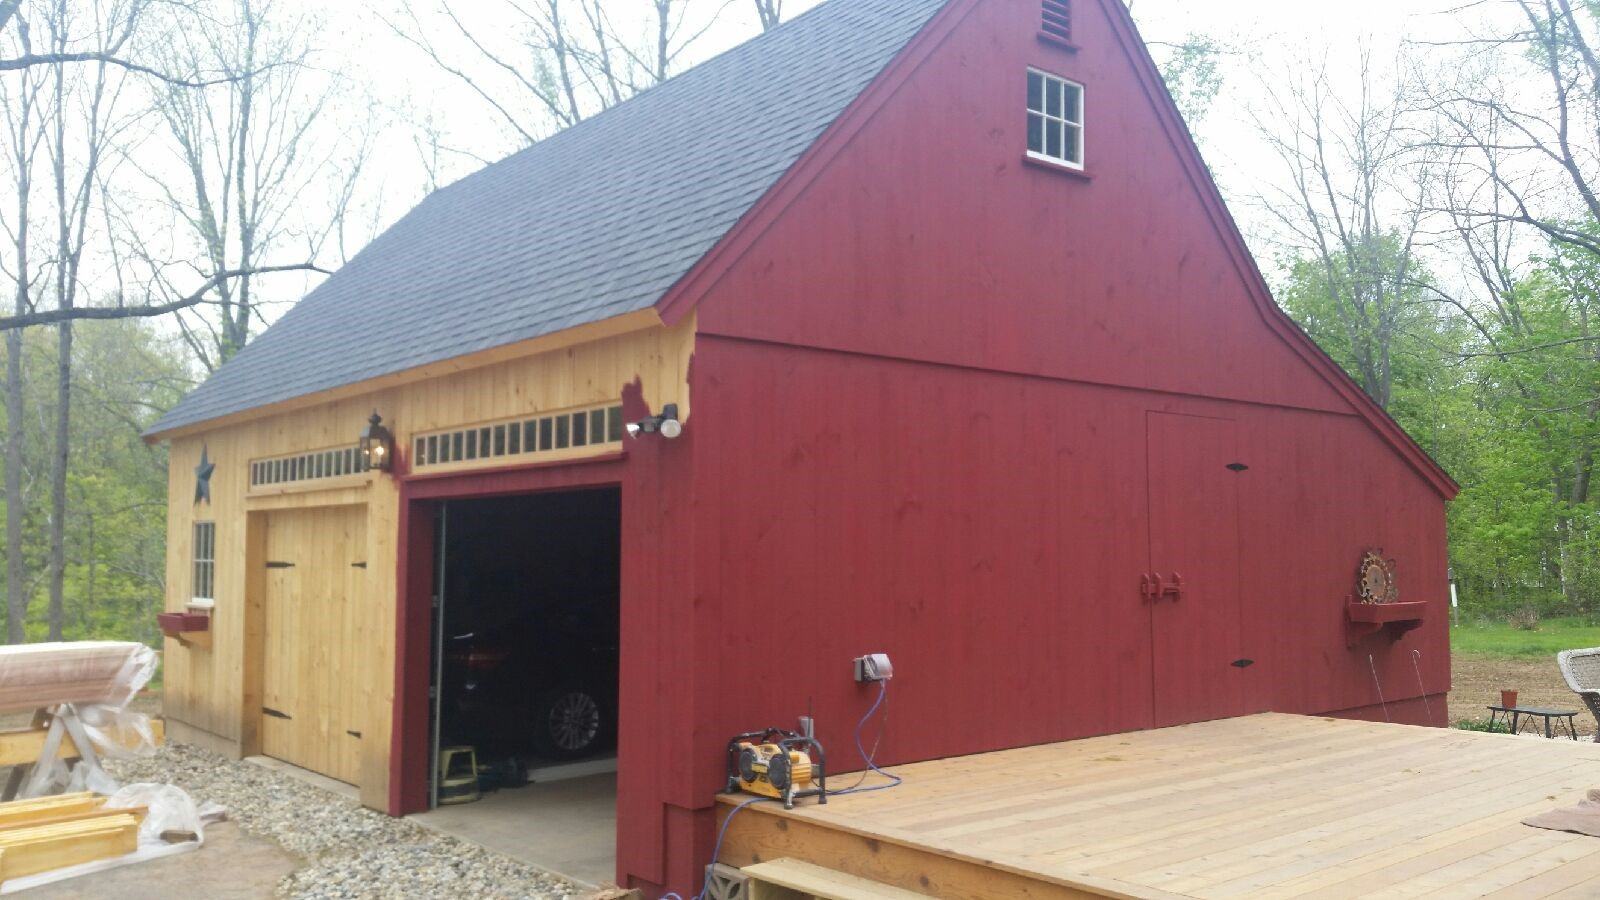 Suffield CT: Garage and Screened in Deck - Home and Hearth Remodeling